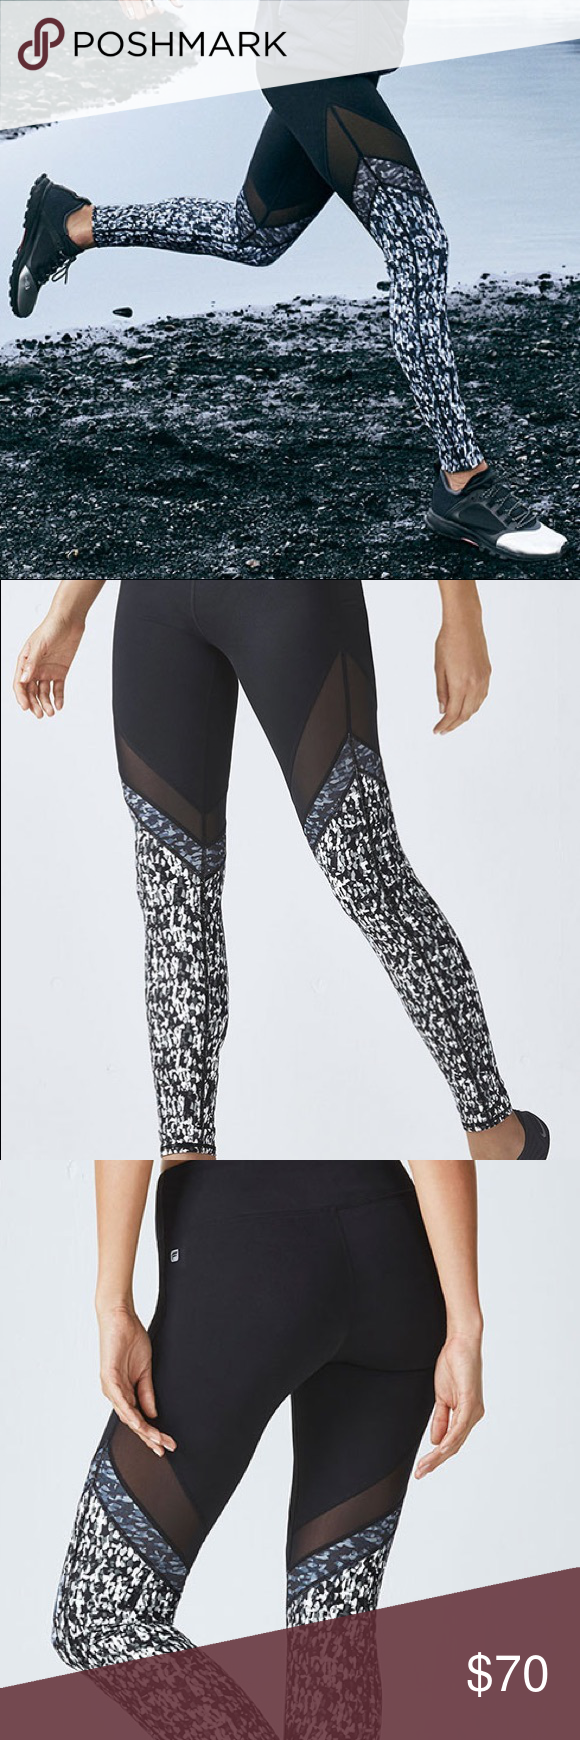 715622a87e9d88 Fabletics Brogan Mesh Legging NWT! Bought without trying on and too small.  Originally purchased for 80$, and trying to receive as much of my money  back as ...